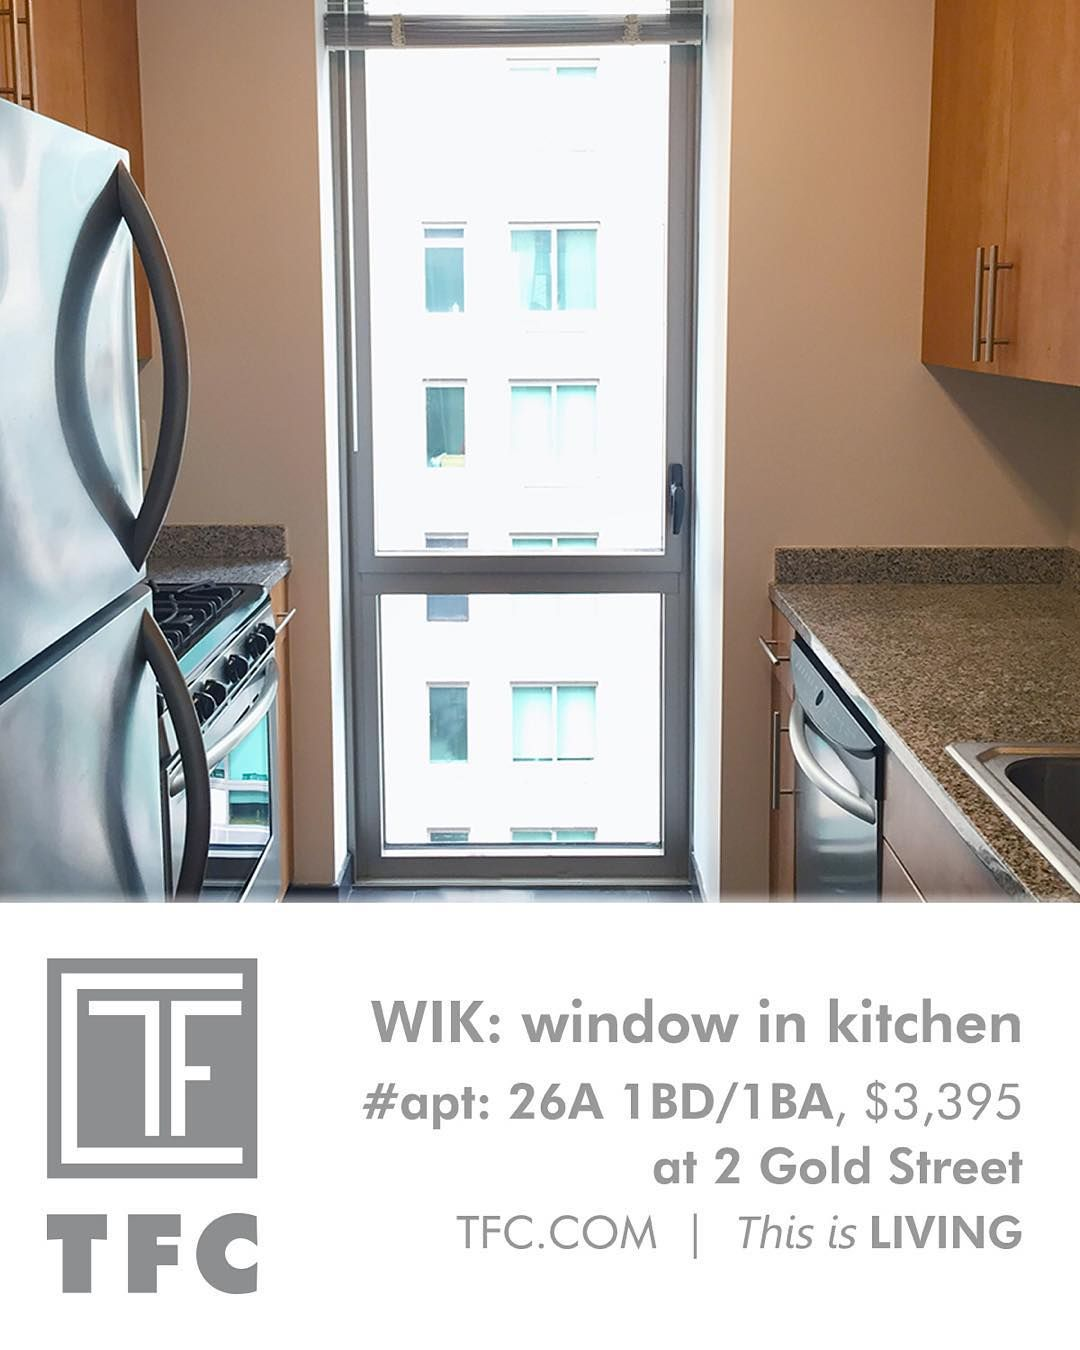 Fresh Listings And Views From TFC Apartments: WIK Of Your